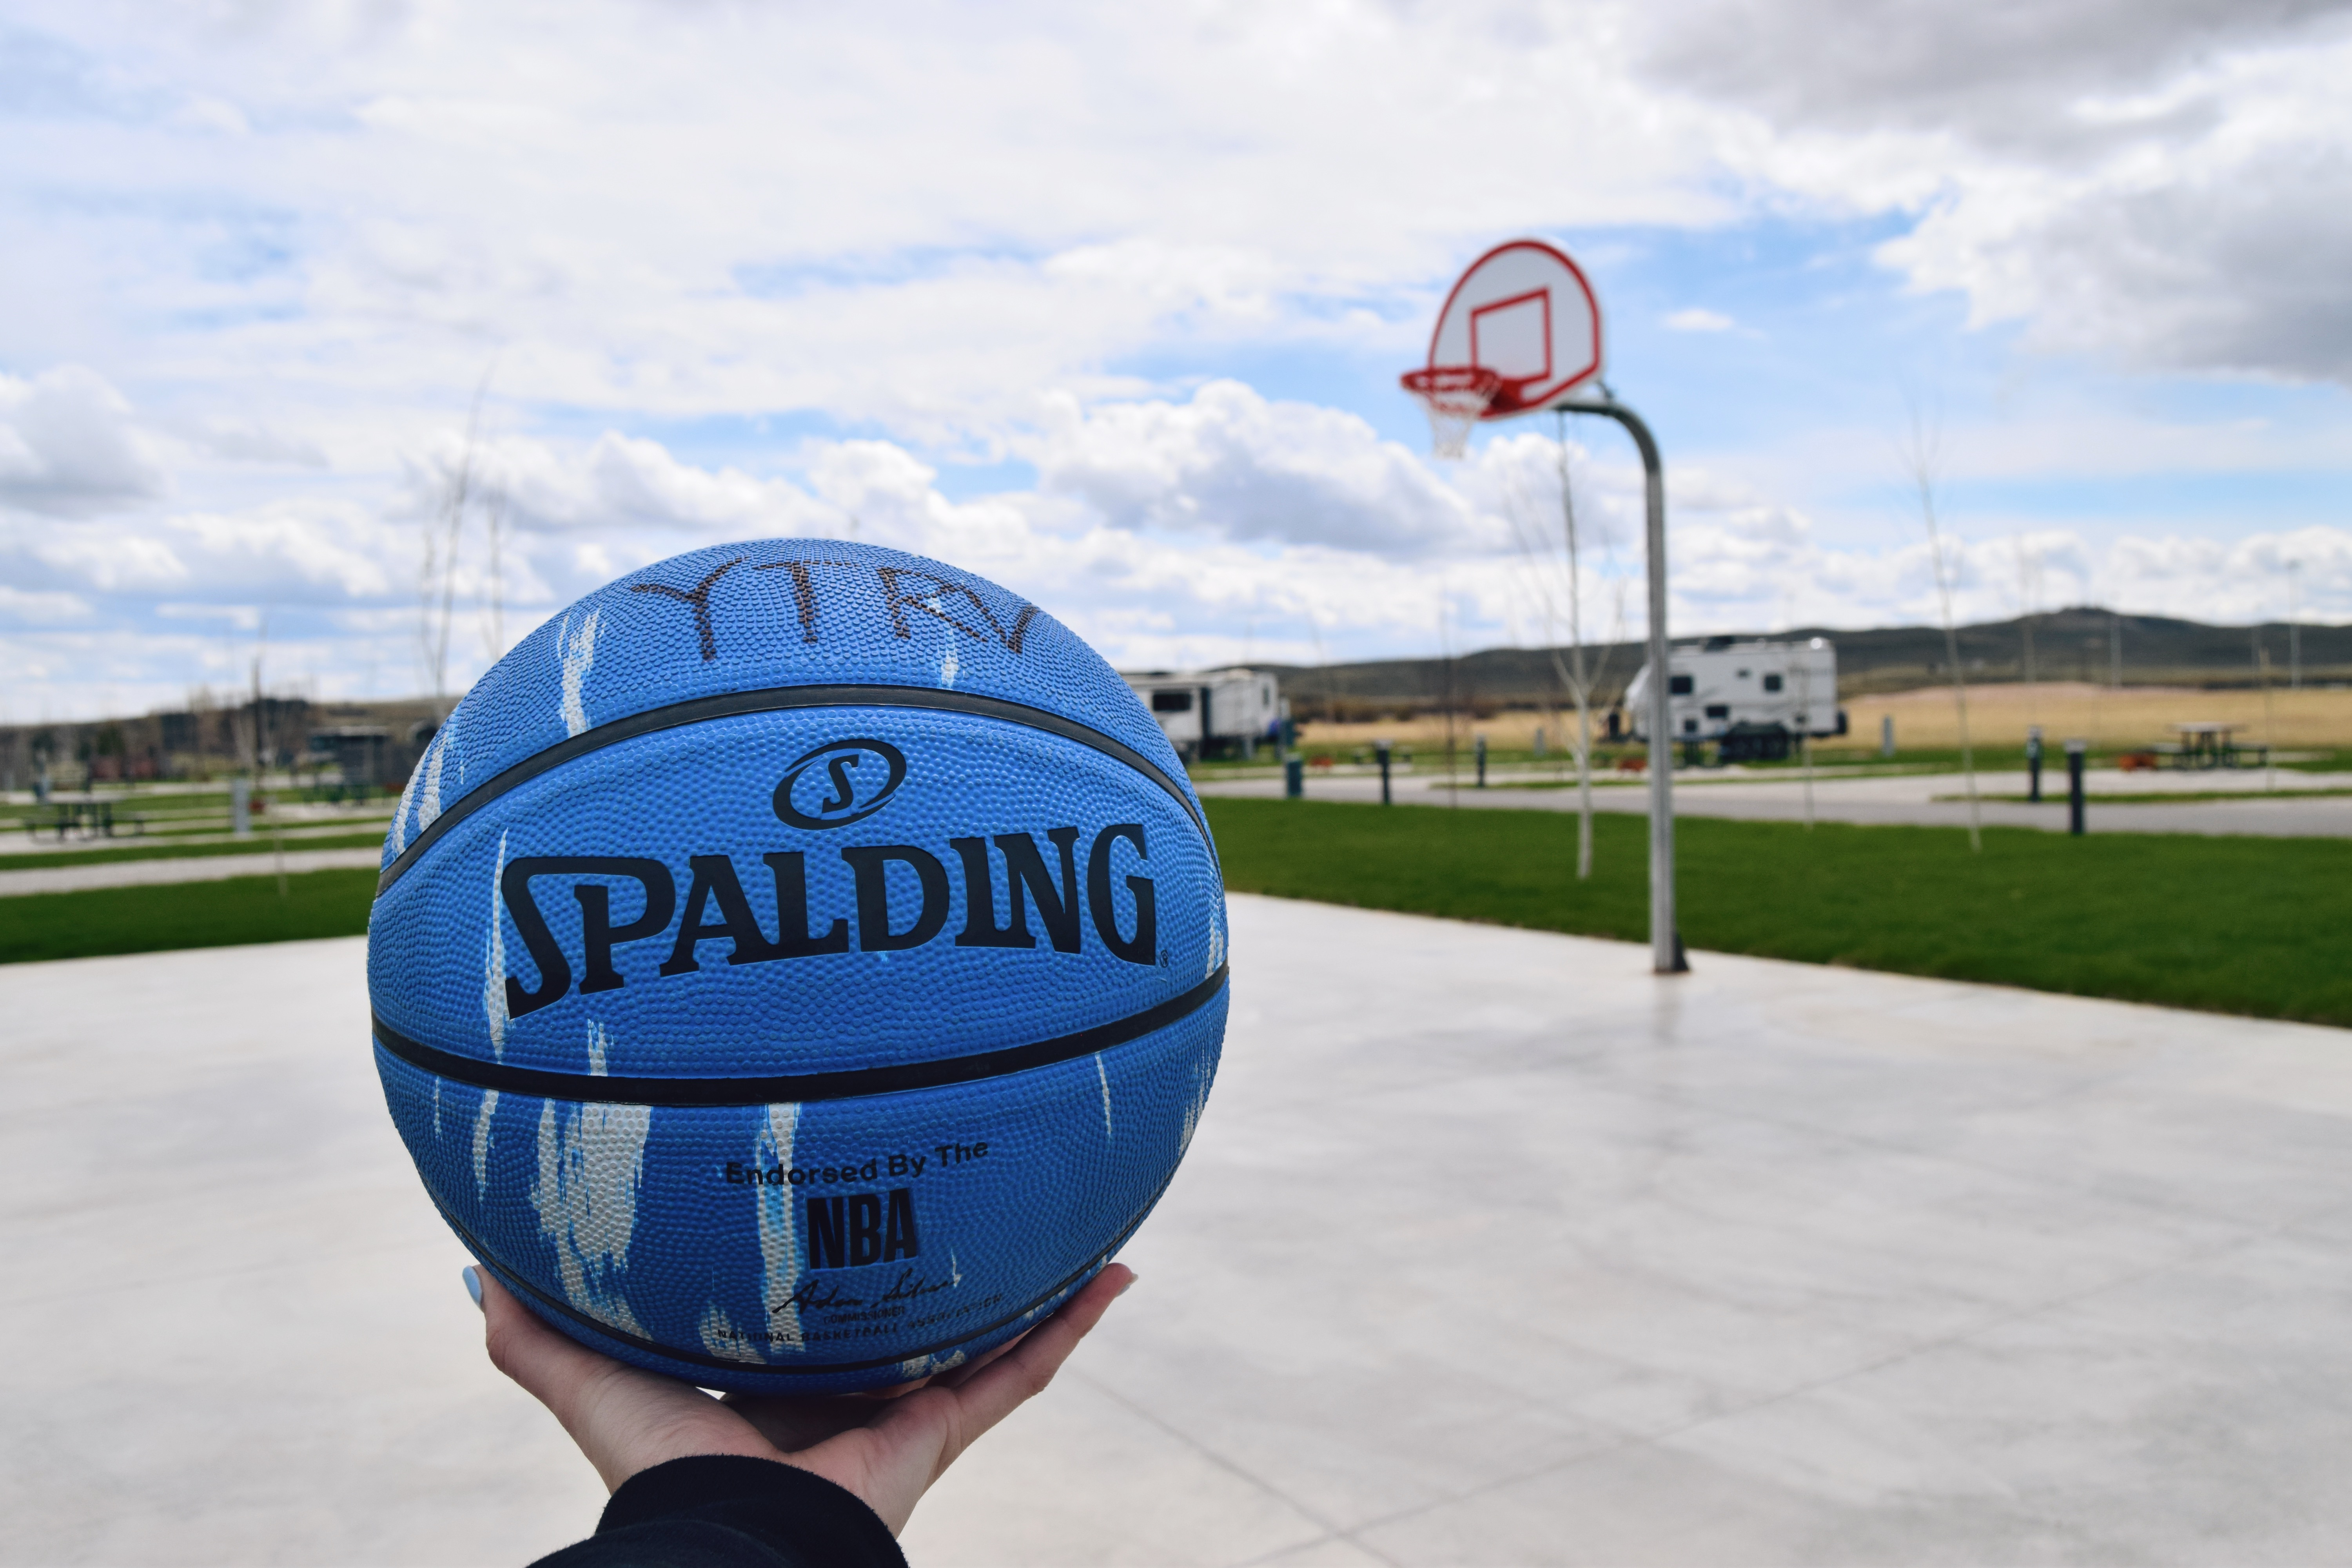 Don't forget to stop by our sport courts!